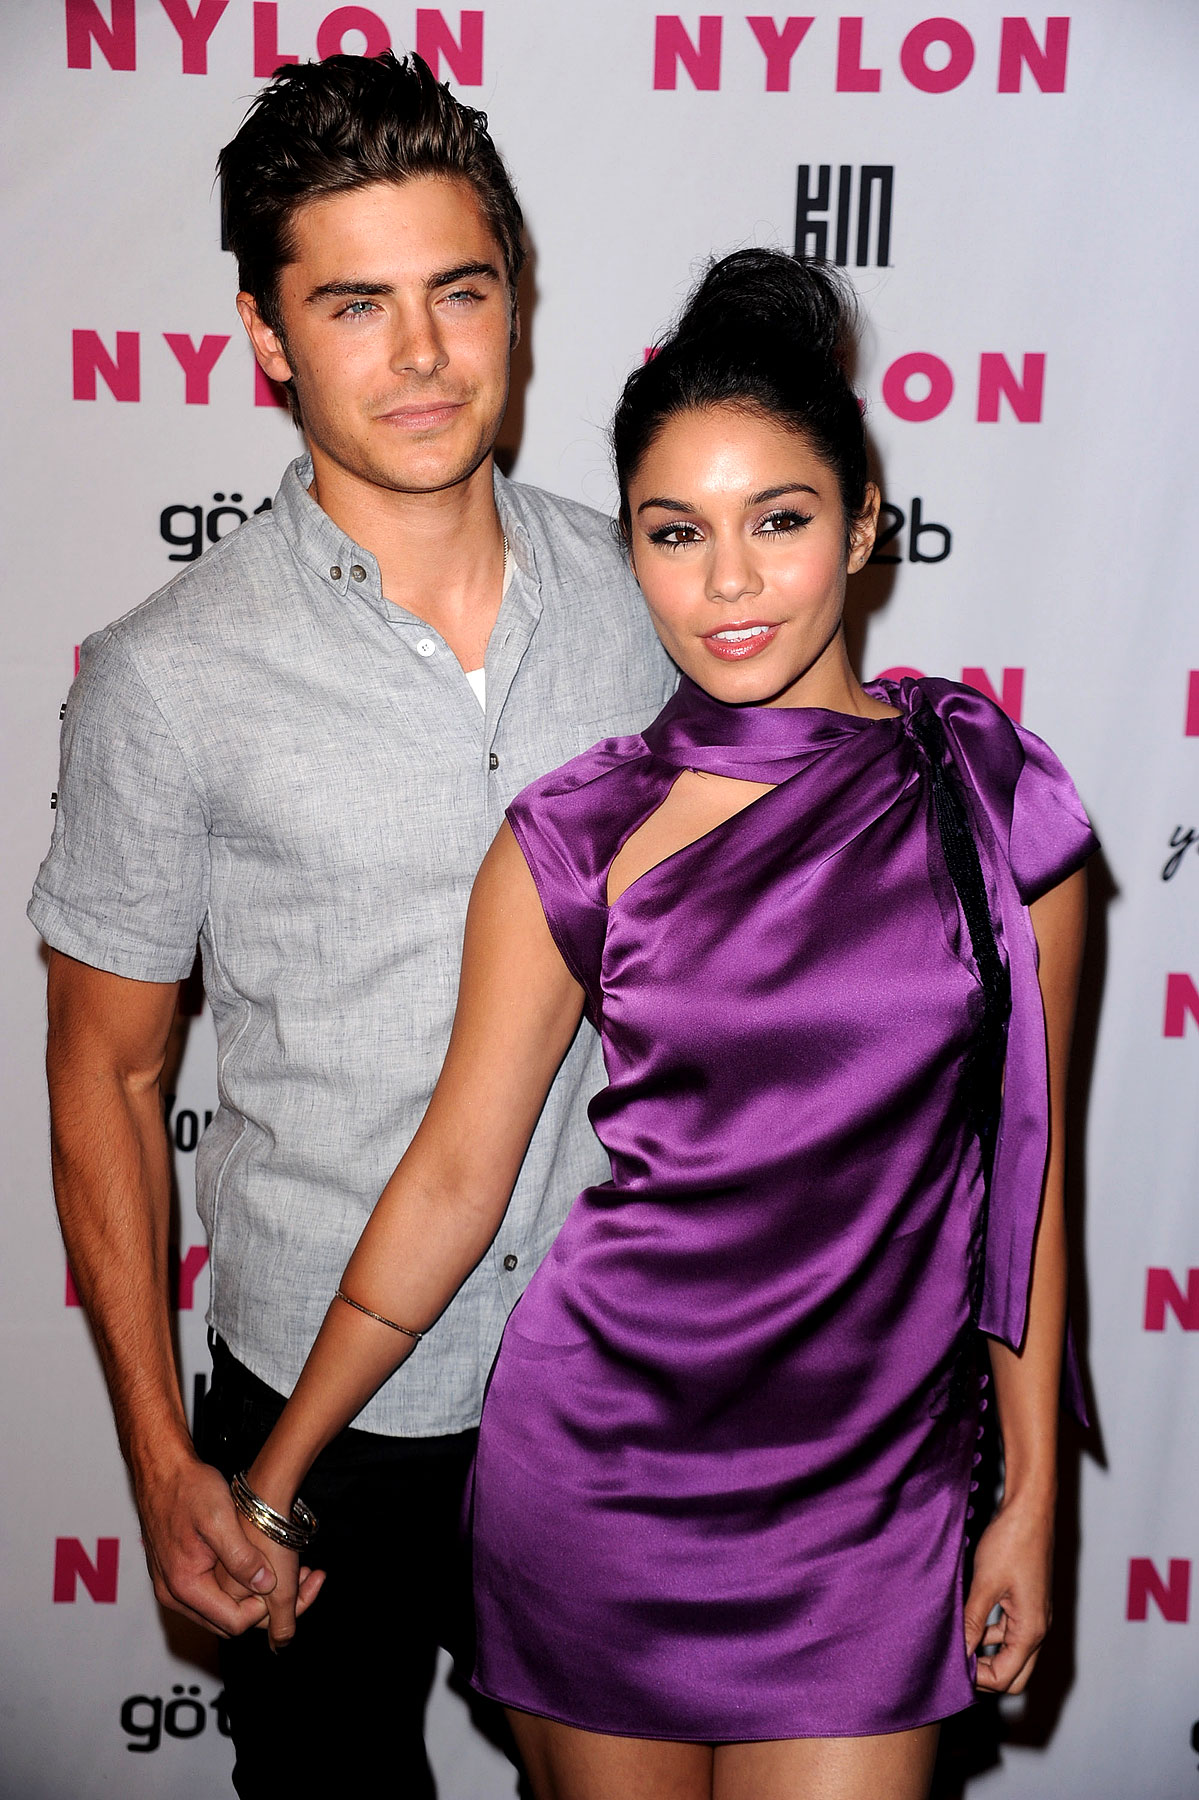 Fashion FAILs & FTWs Of The NYLON Young Hollywood Party (PHOTOS)